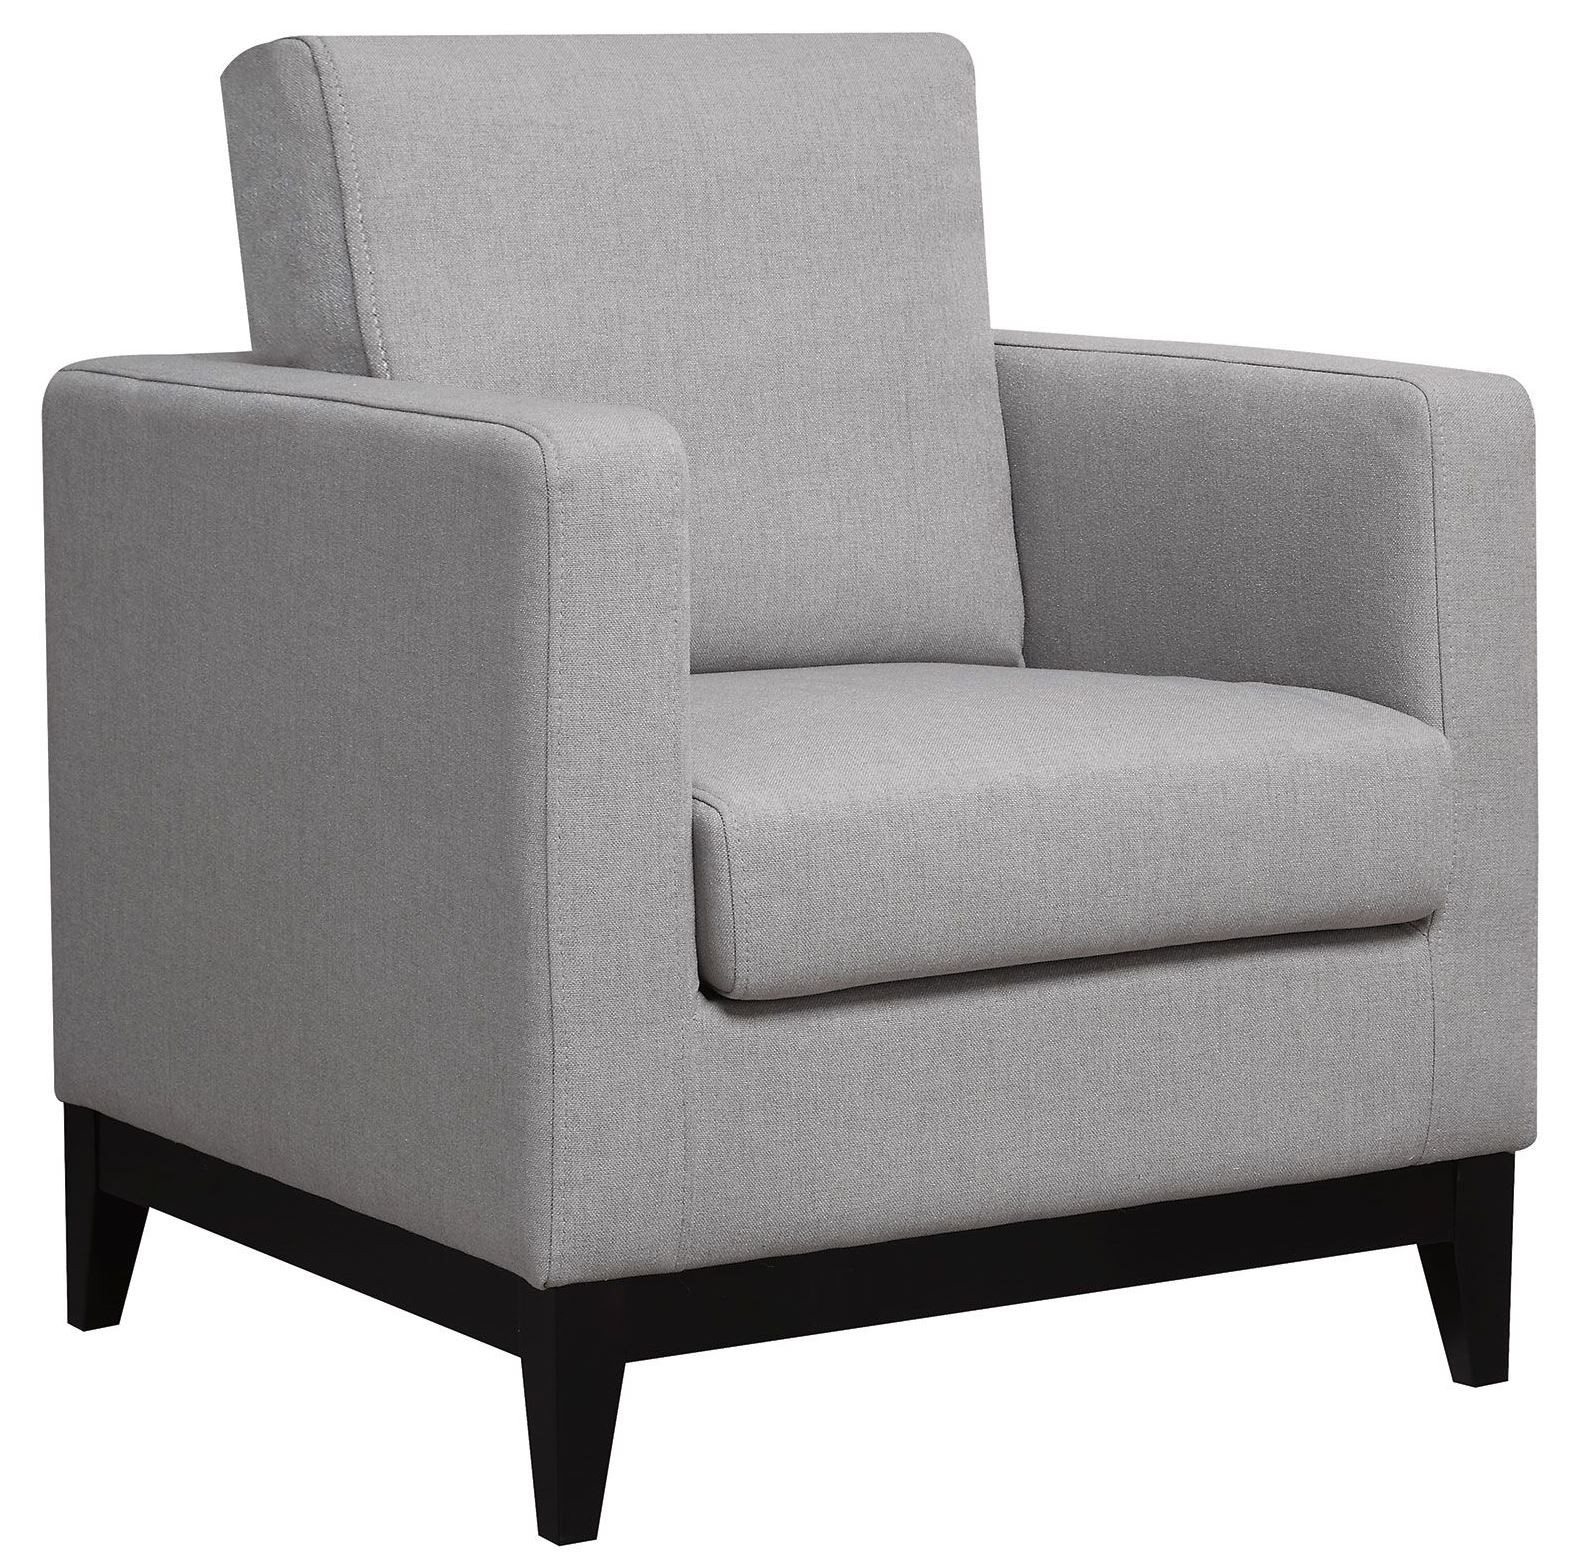 Light Gray Accent Chairs Light Grey Accent Chair From Coaster 902608 Coleman